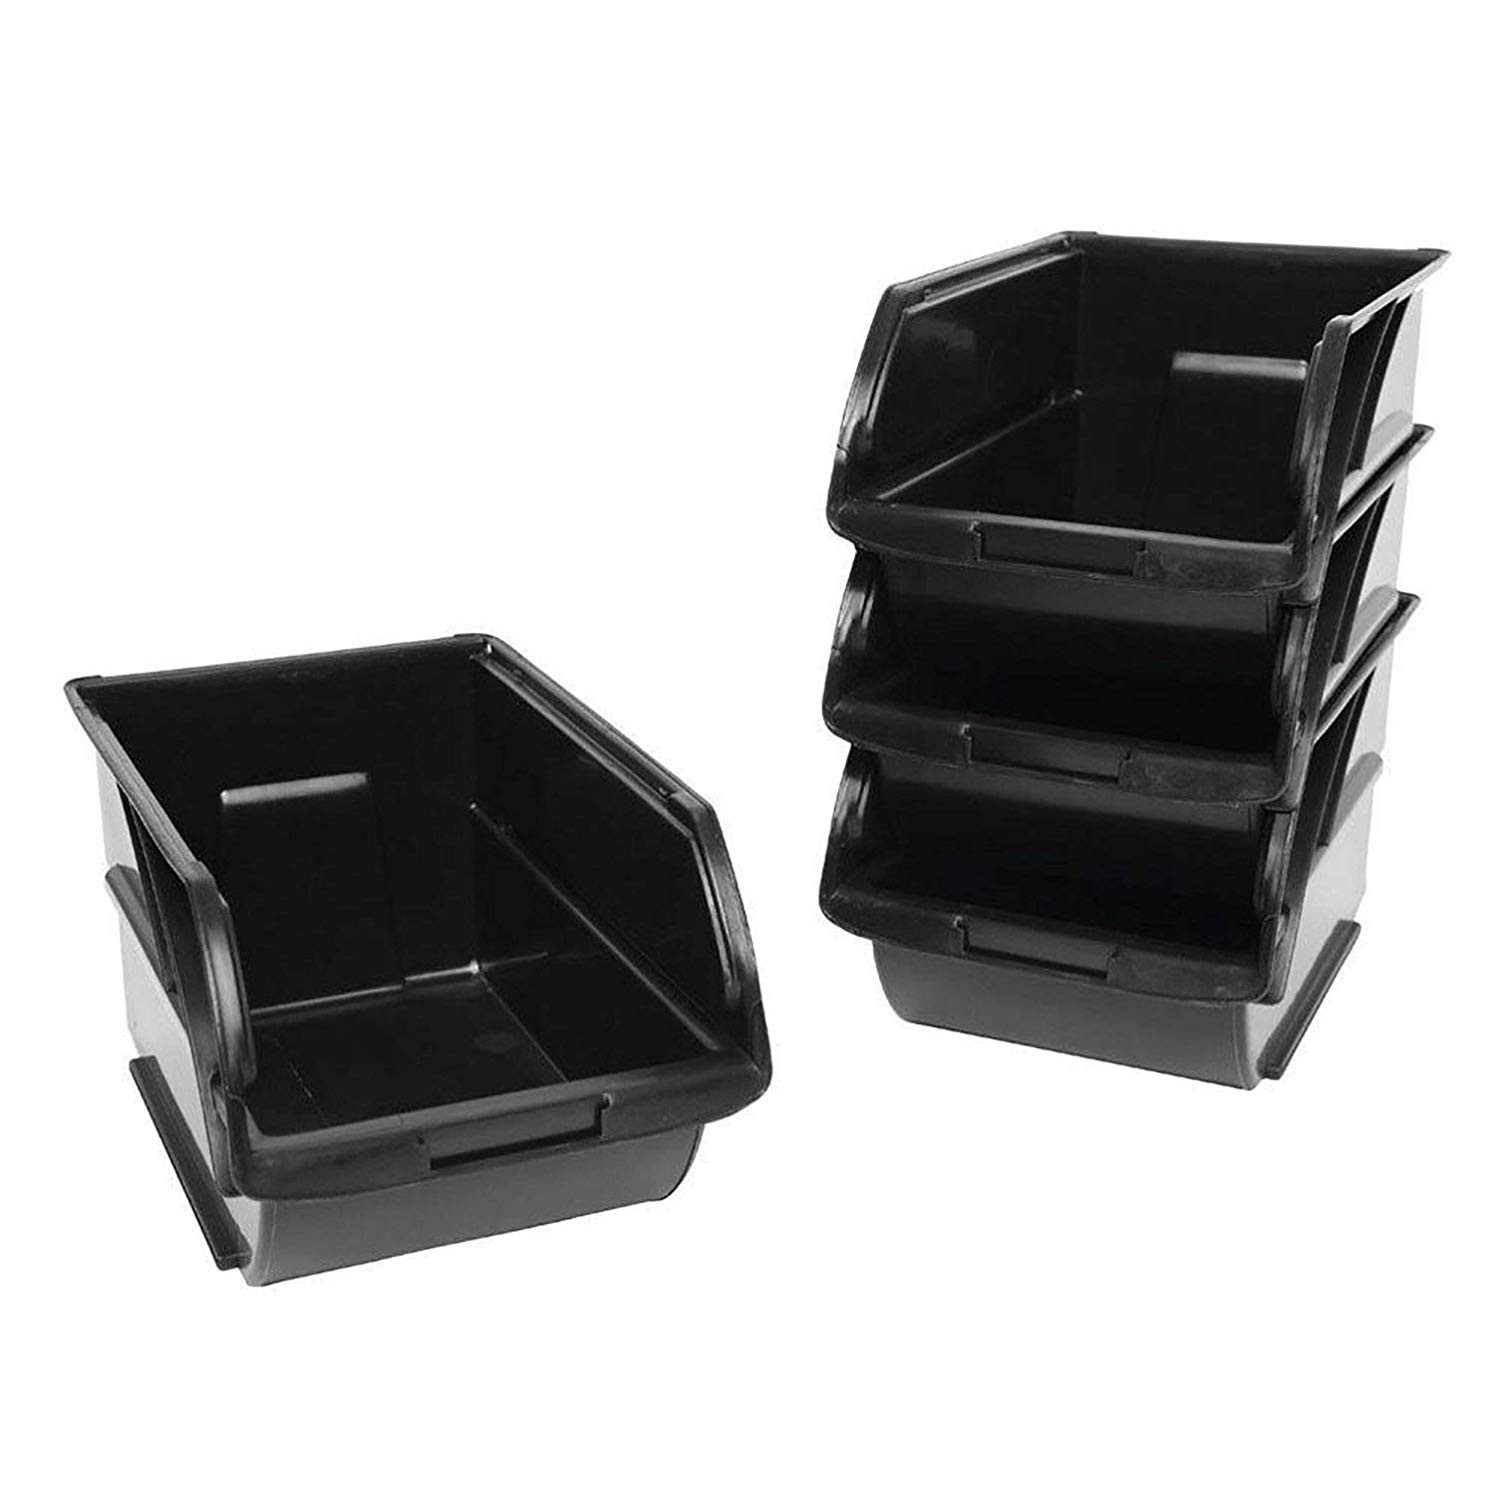 MRT SUPPLY Small Item Bins 4 Pack Stackable Storage Oraganizer Container Bin Plastic Black with Ebook